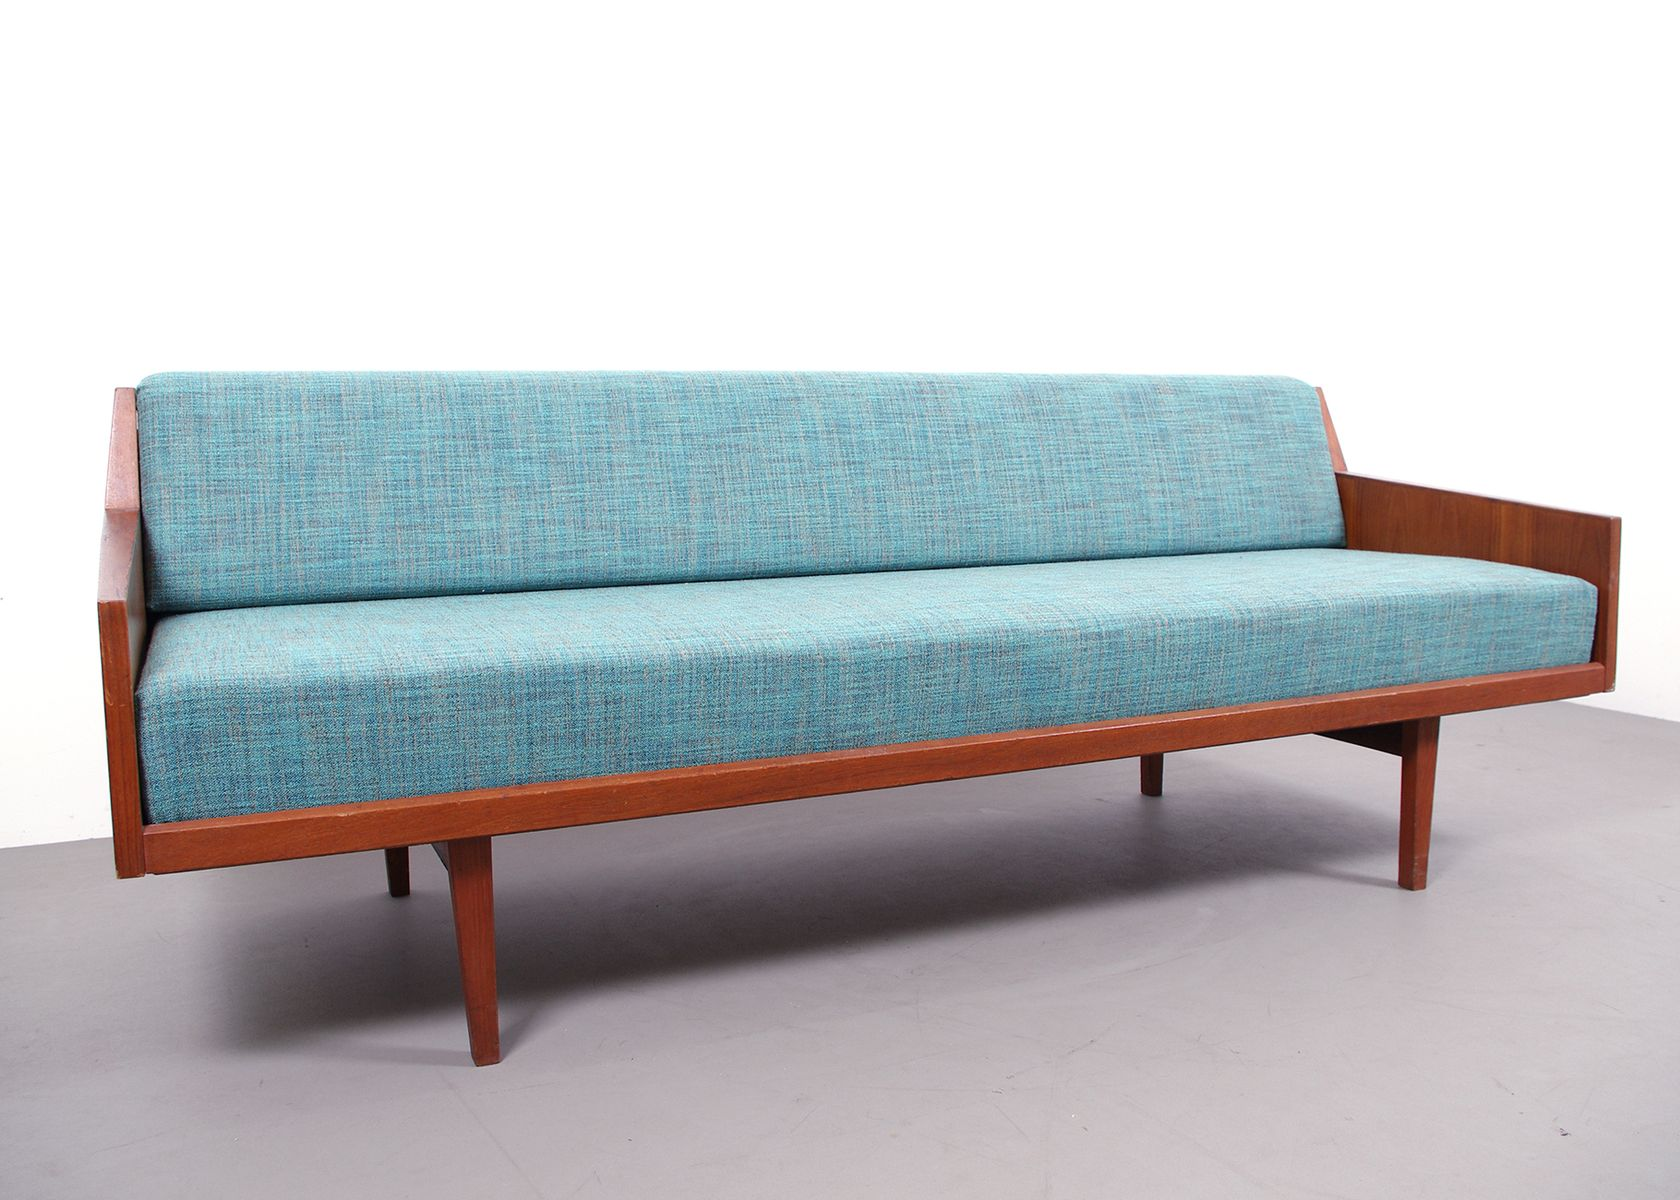 Daybed danish  Danish Daybed from Horsnaes Møbler, 1960s for sale at Pamono